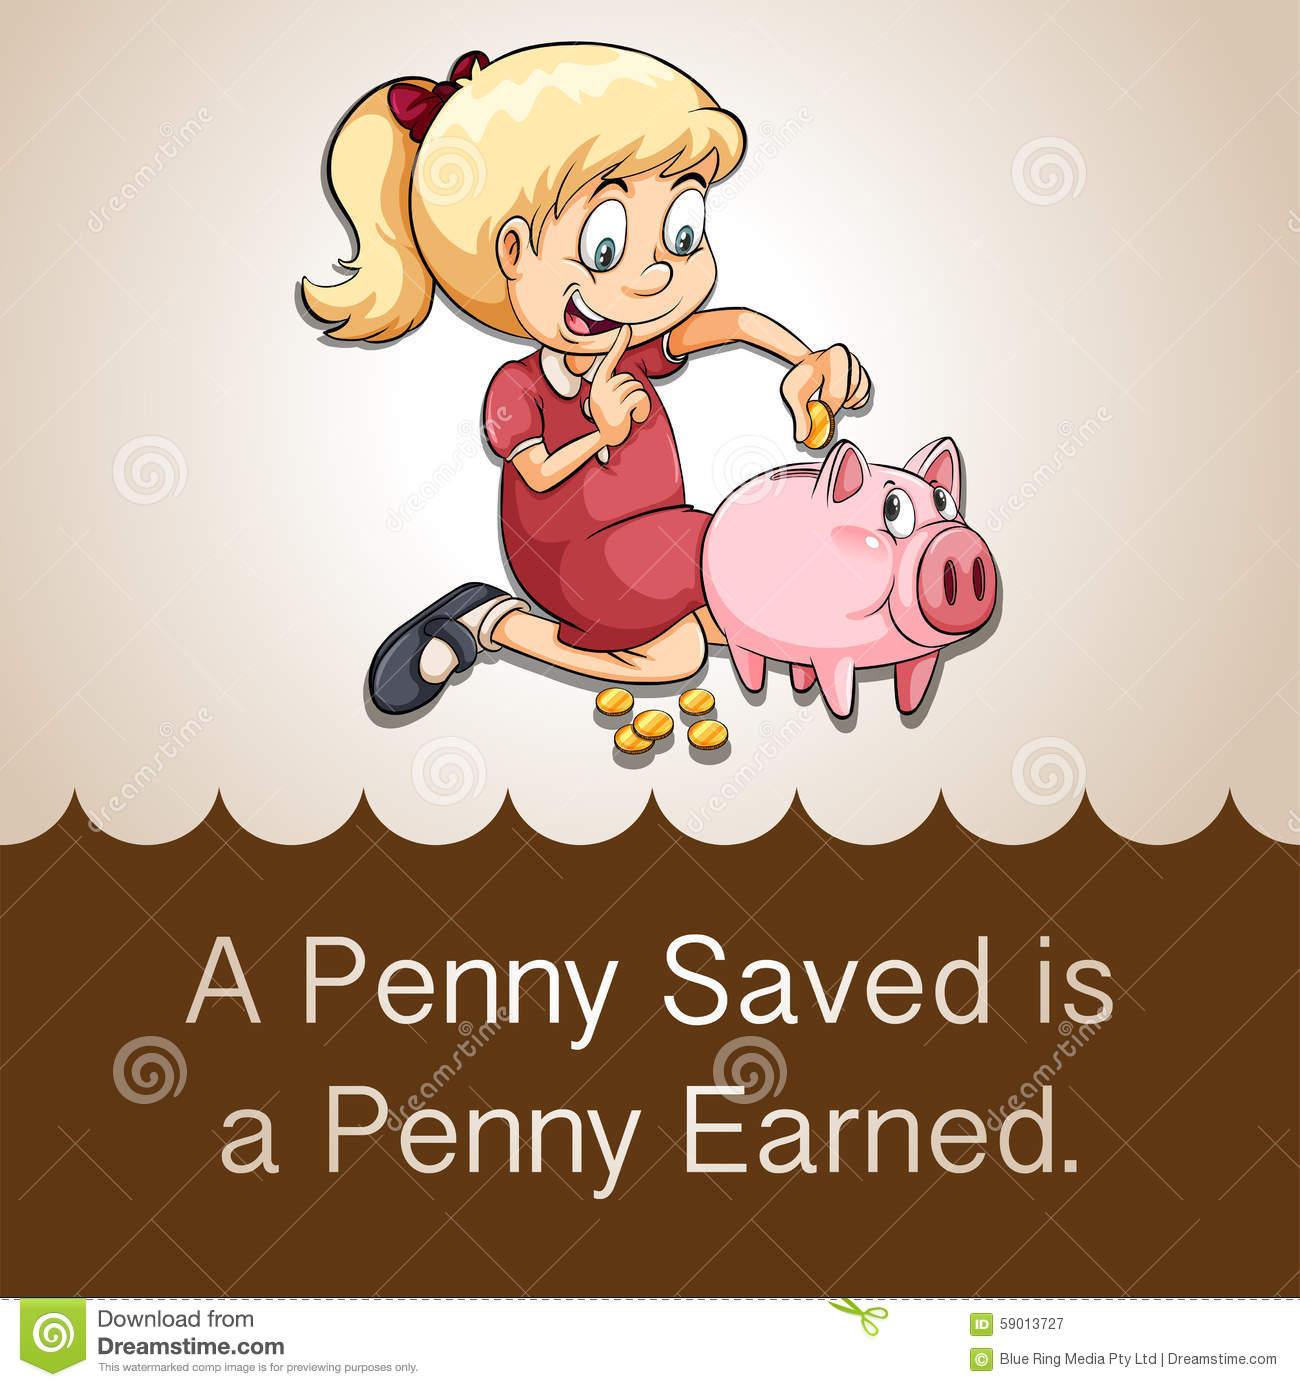 essay on penny saved is a penny earned What does the phrase 'a penny saved is a penny earned' mean find out the phrase's definition & origin, and get examples of how to use it in a sentence.